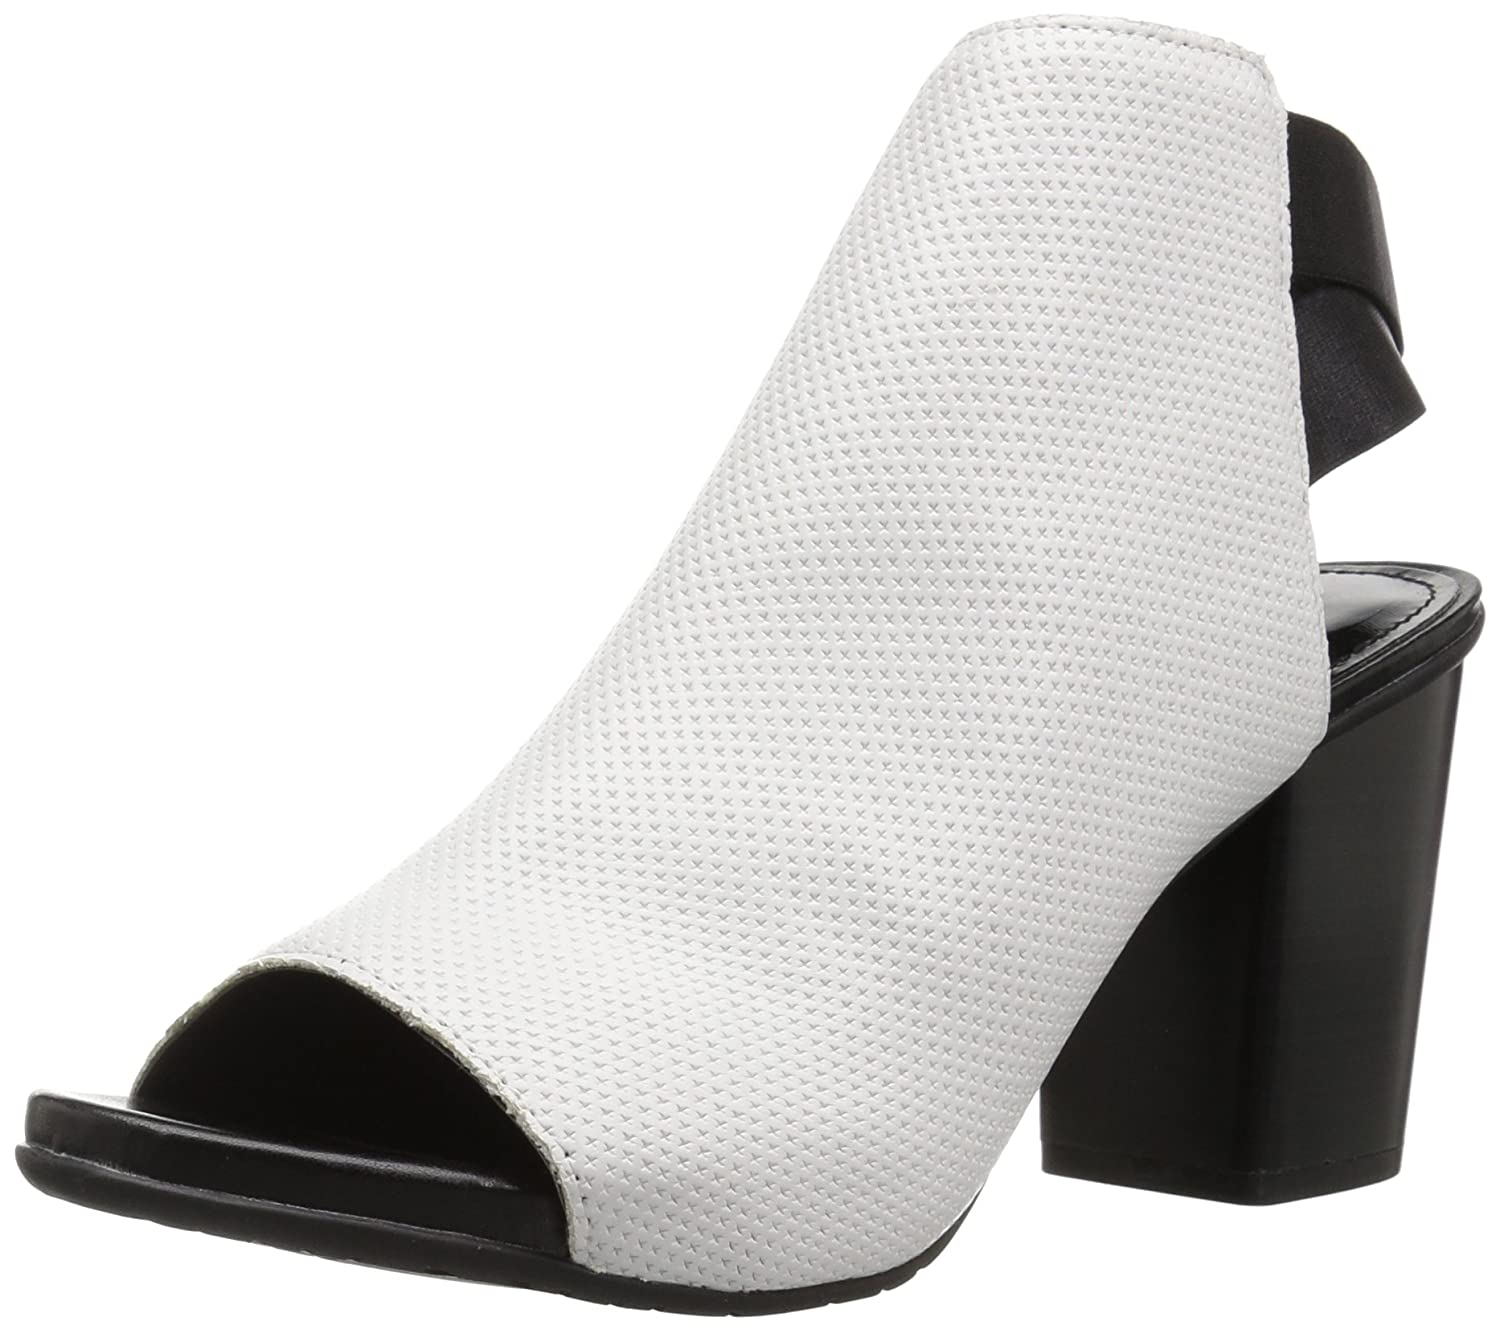 Kenneth Cole REACTION Women's Fridah Fly Toe and Open Heel Bootie Ankle Boot B077Y8GVJY 5 B(M) US|White